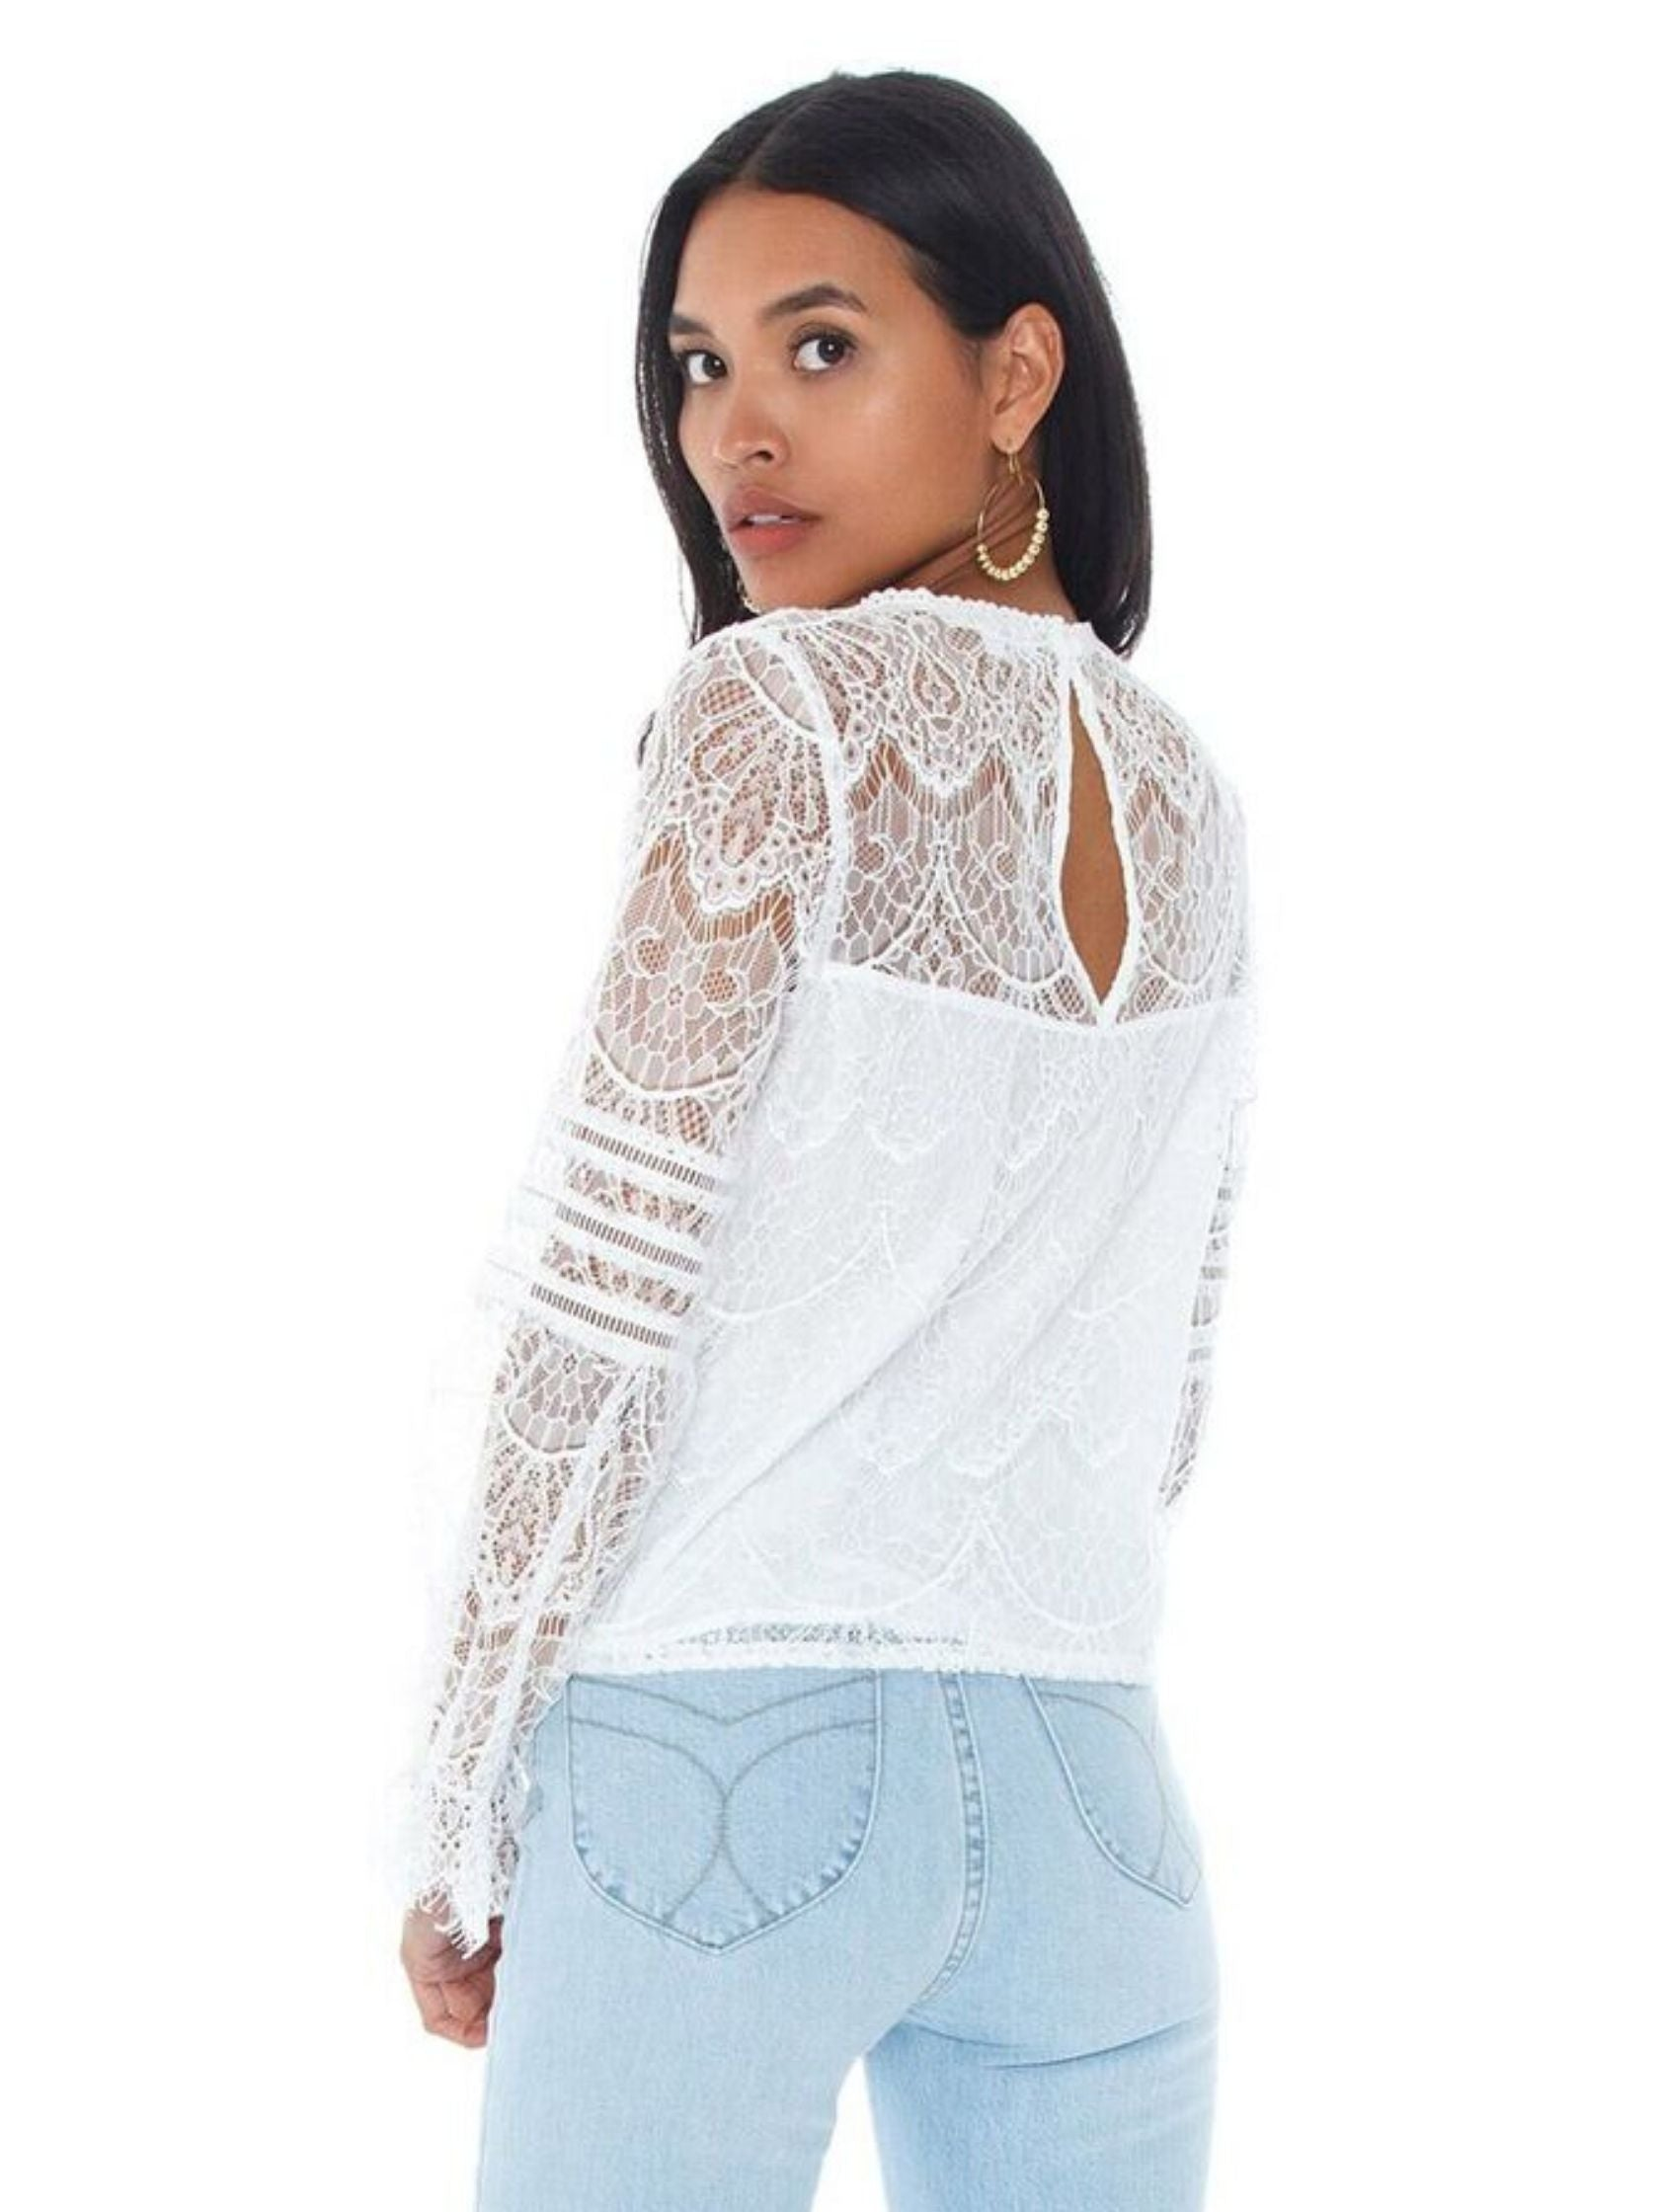 Women outfit in a top rental from BB Dakota called Smoke And Mirrors Lace Blouse